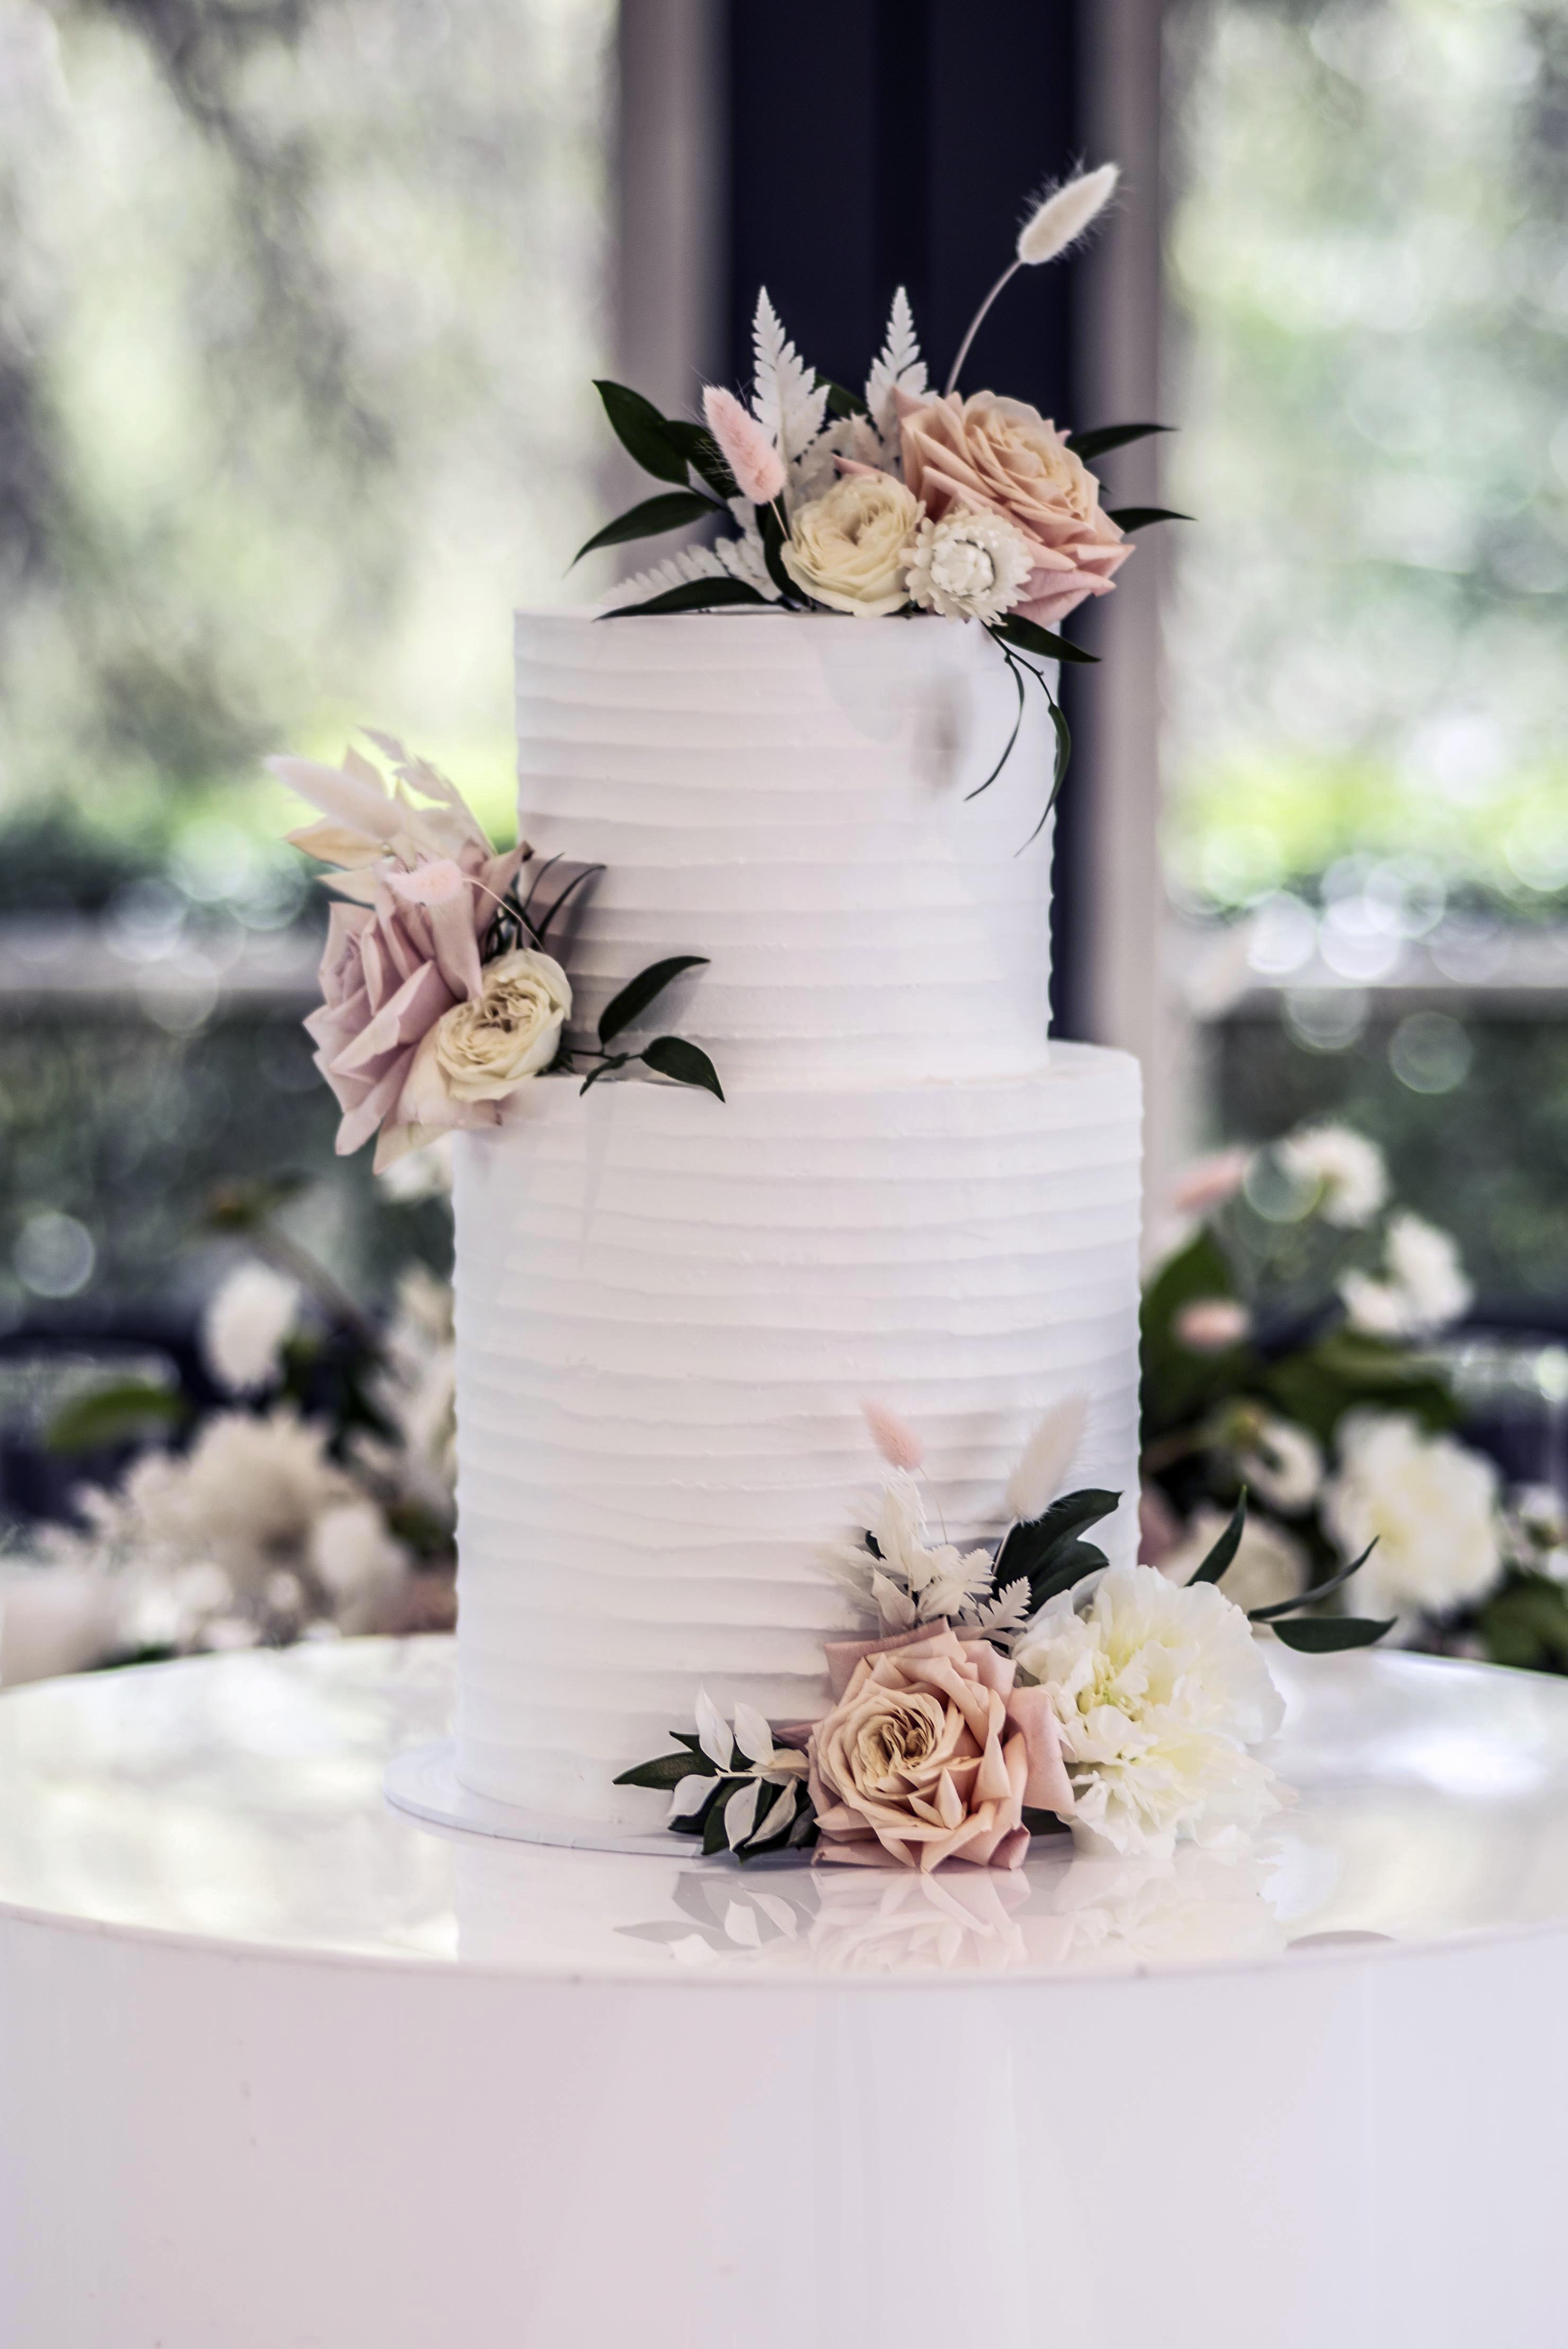 Blush pink and cream flowers on a white cake